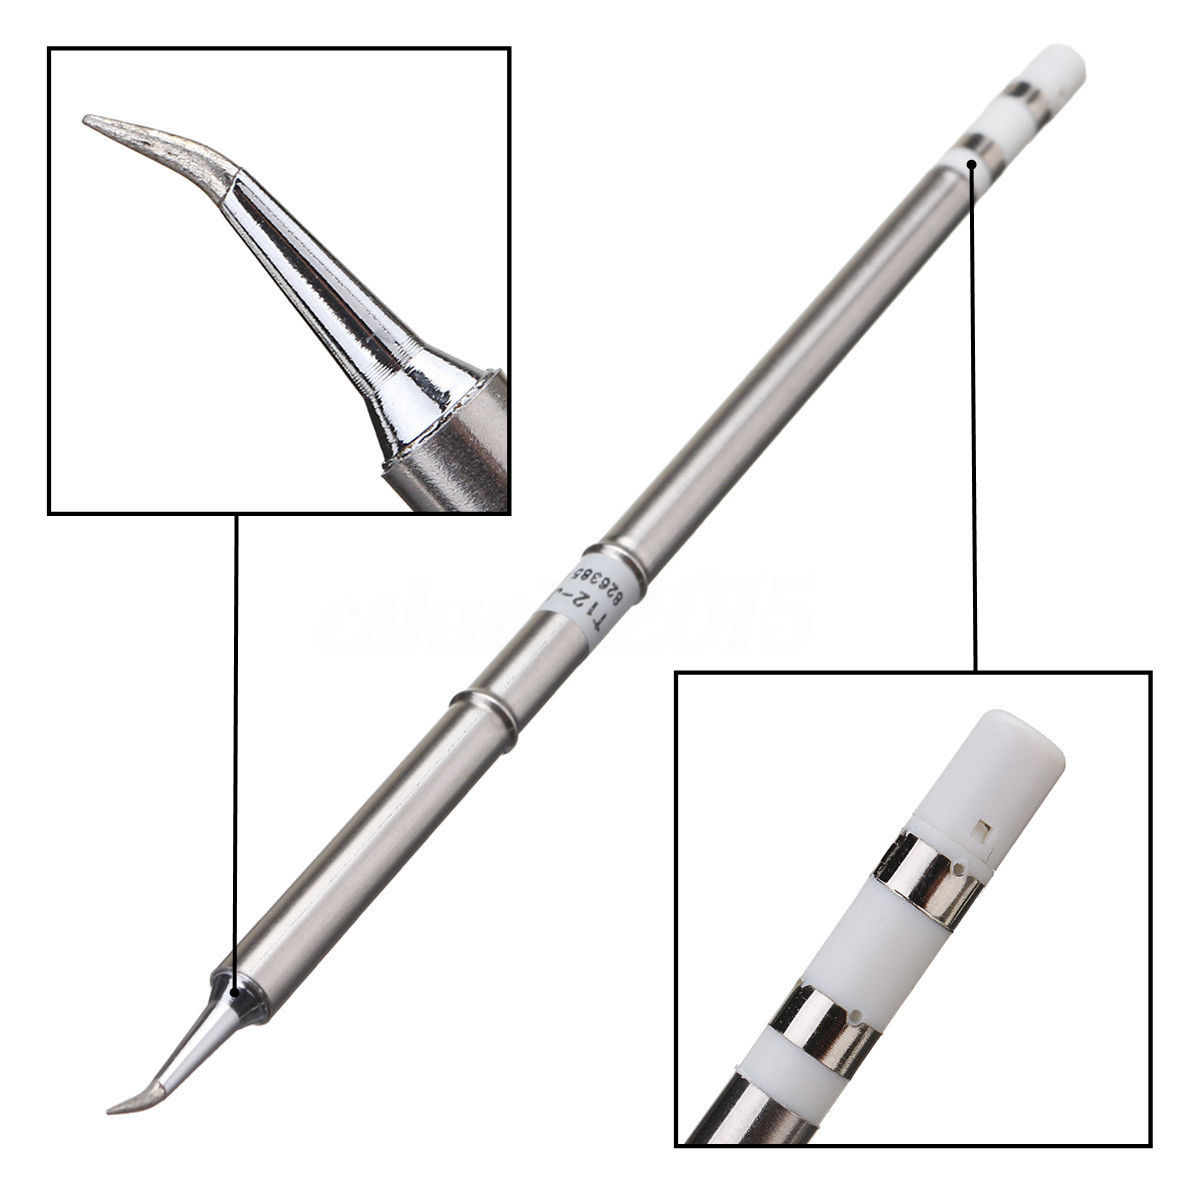 1pc Heavy Duty T12 Soldering Iron Tips Silver Welding Solder Station Tip Replacement For HAKKO